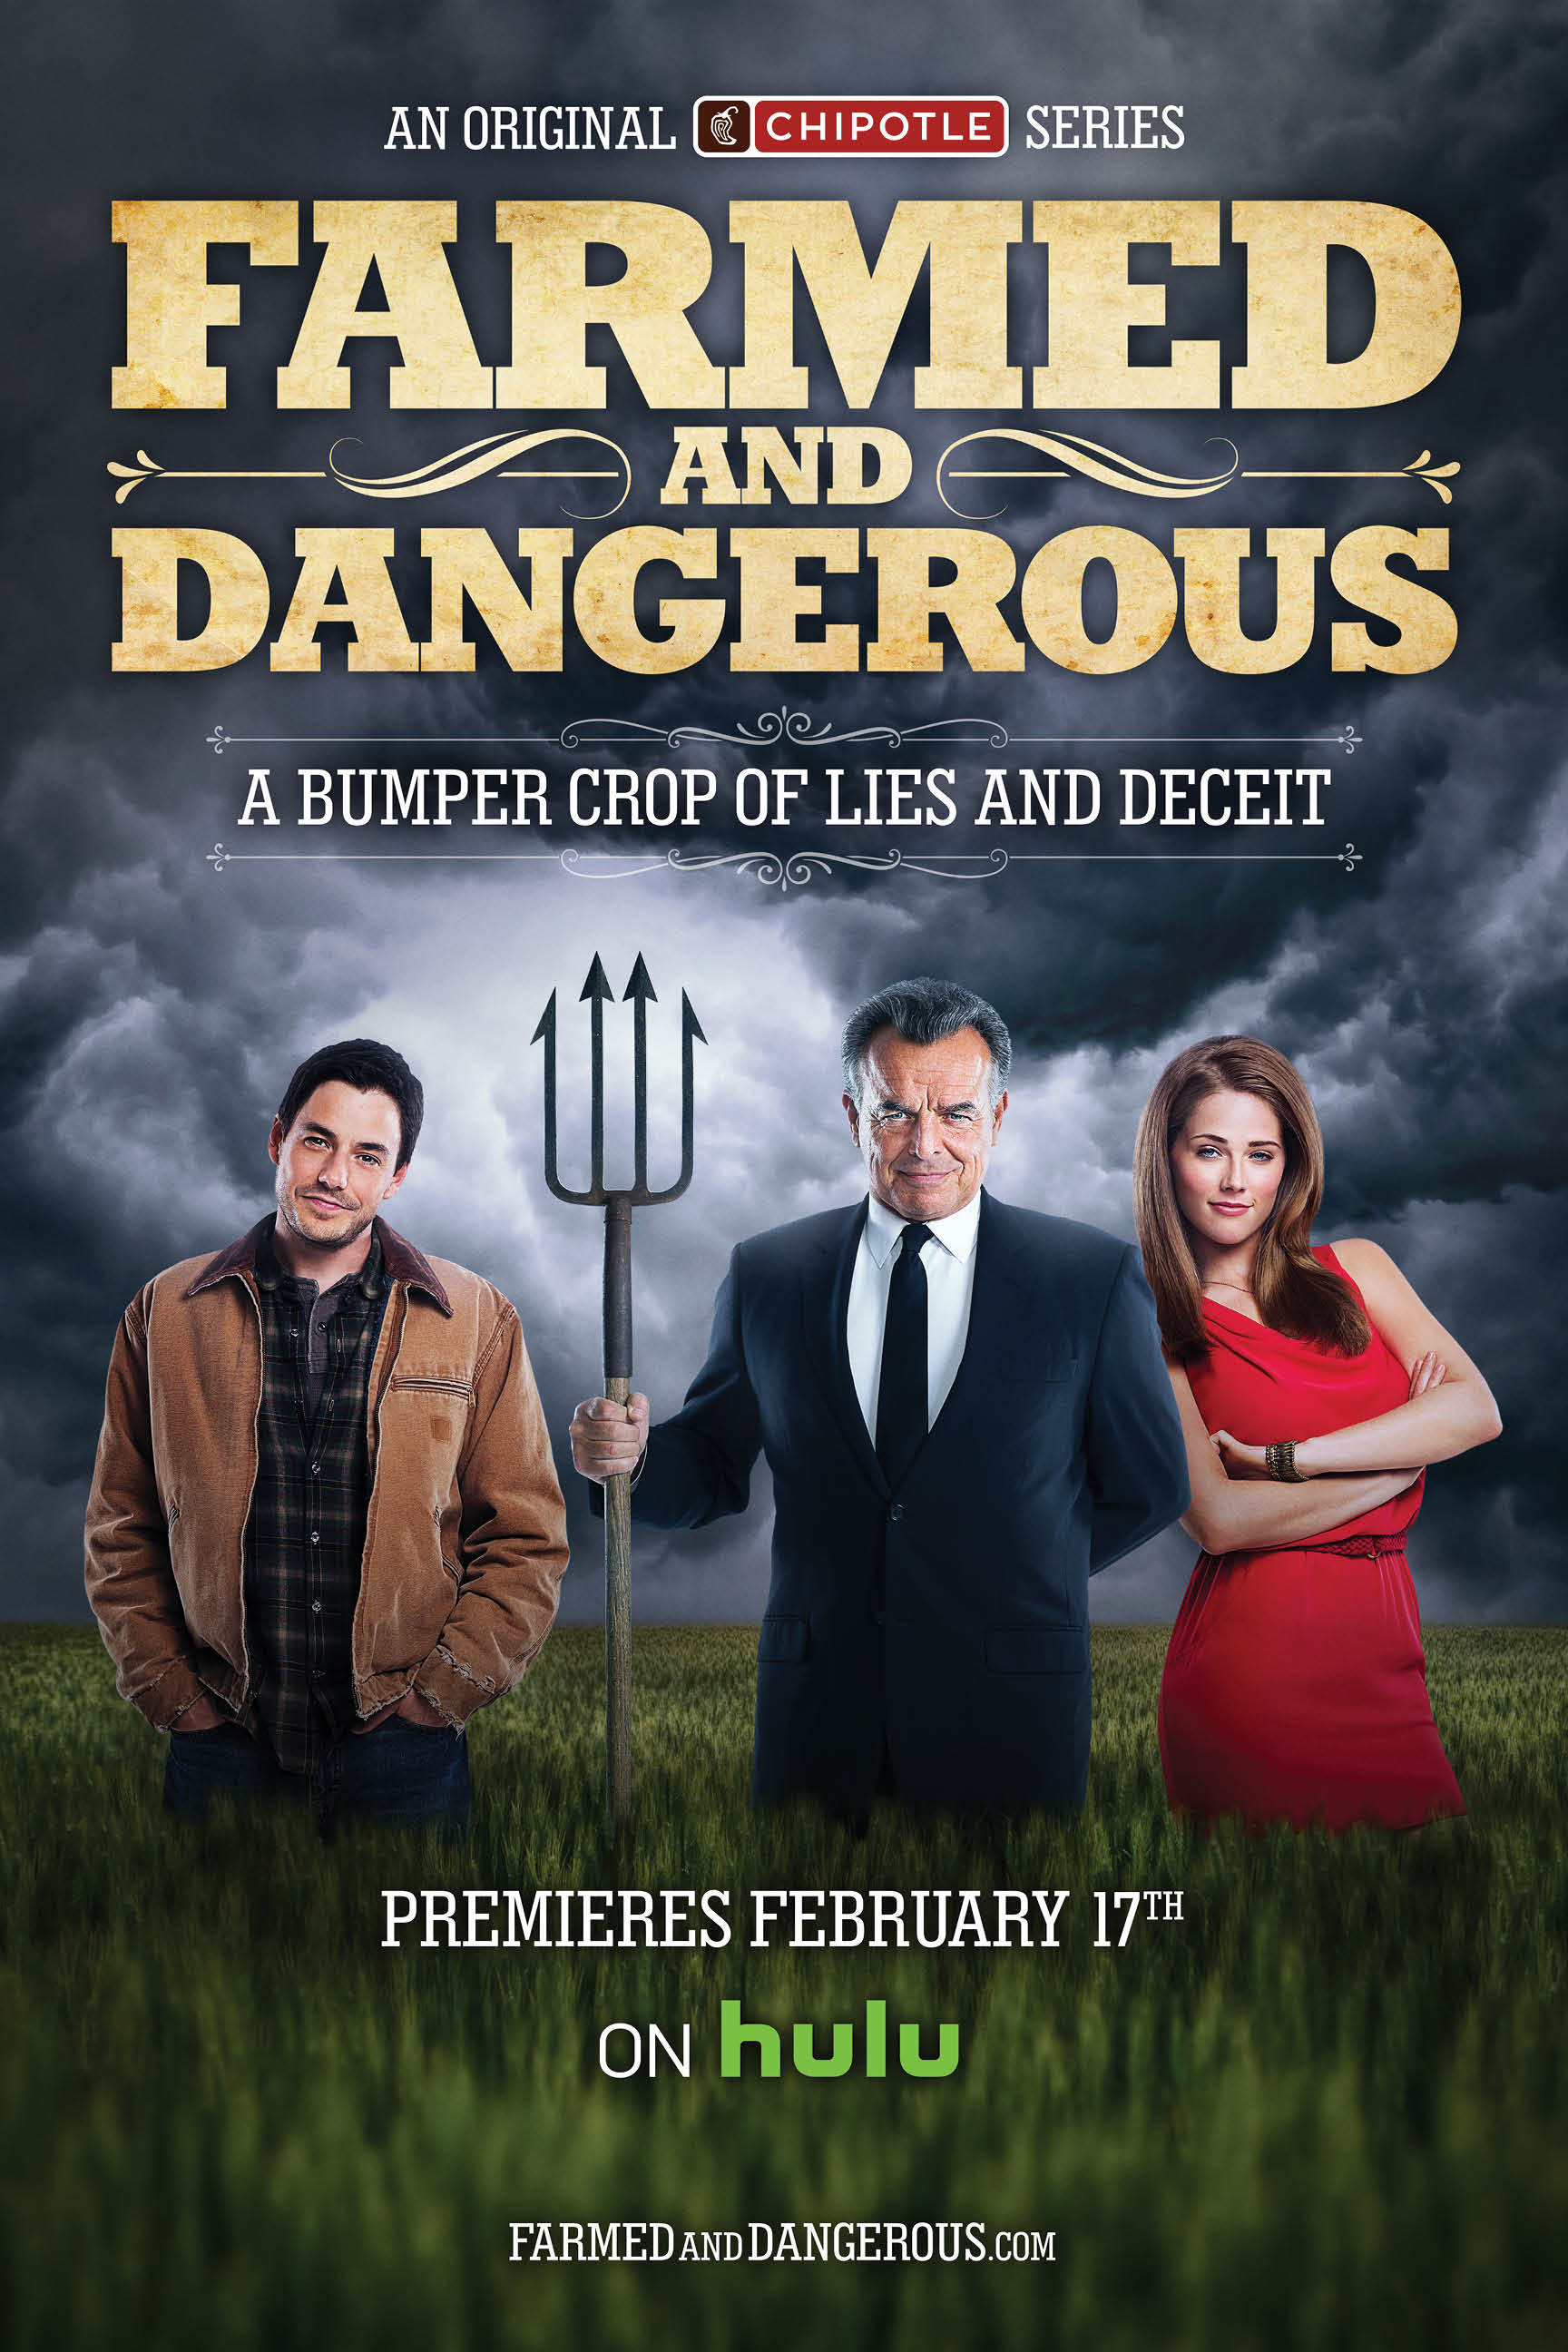 """""""Farmed and Dangerous,"""" a new original comedy series by Chipotle. (Photo: Business Wire)"""